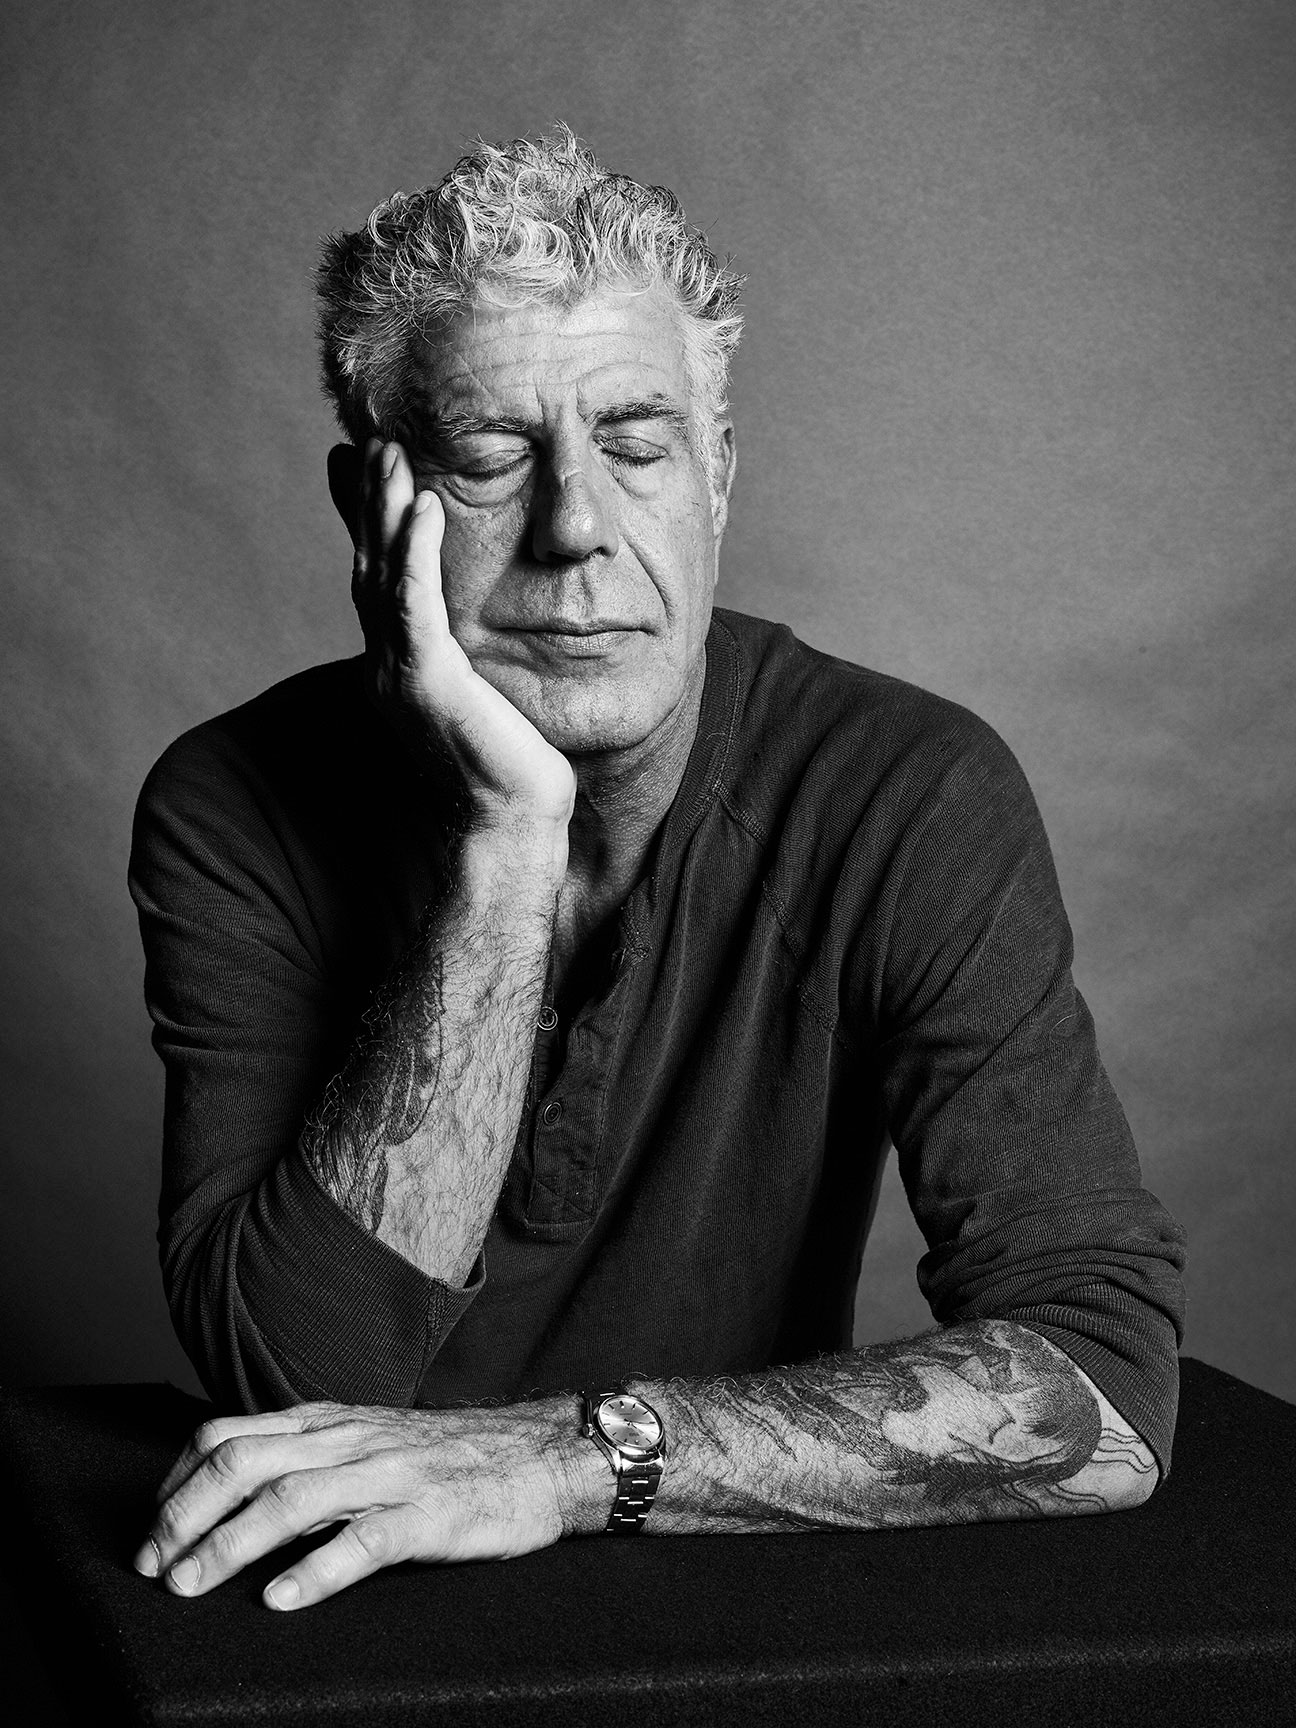 ANTHONY_BOURDAIN_02